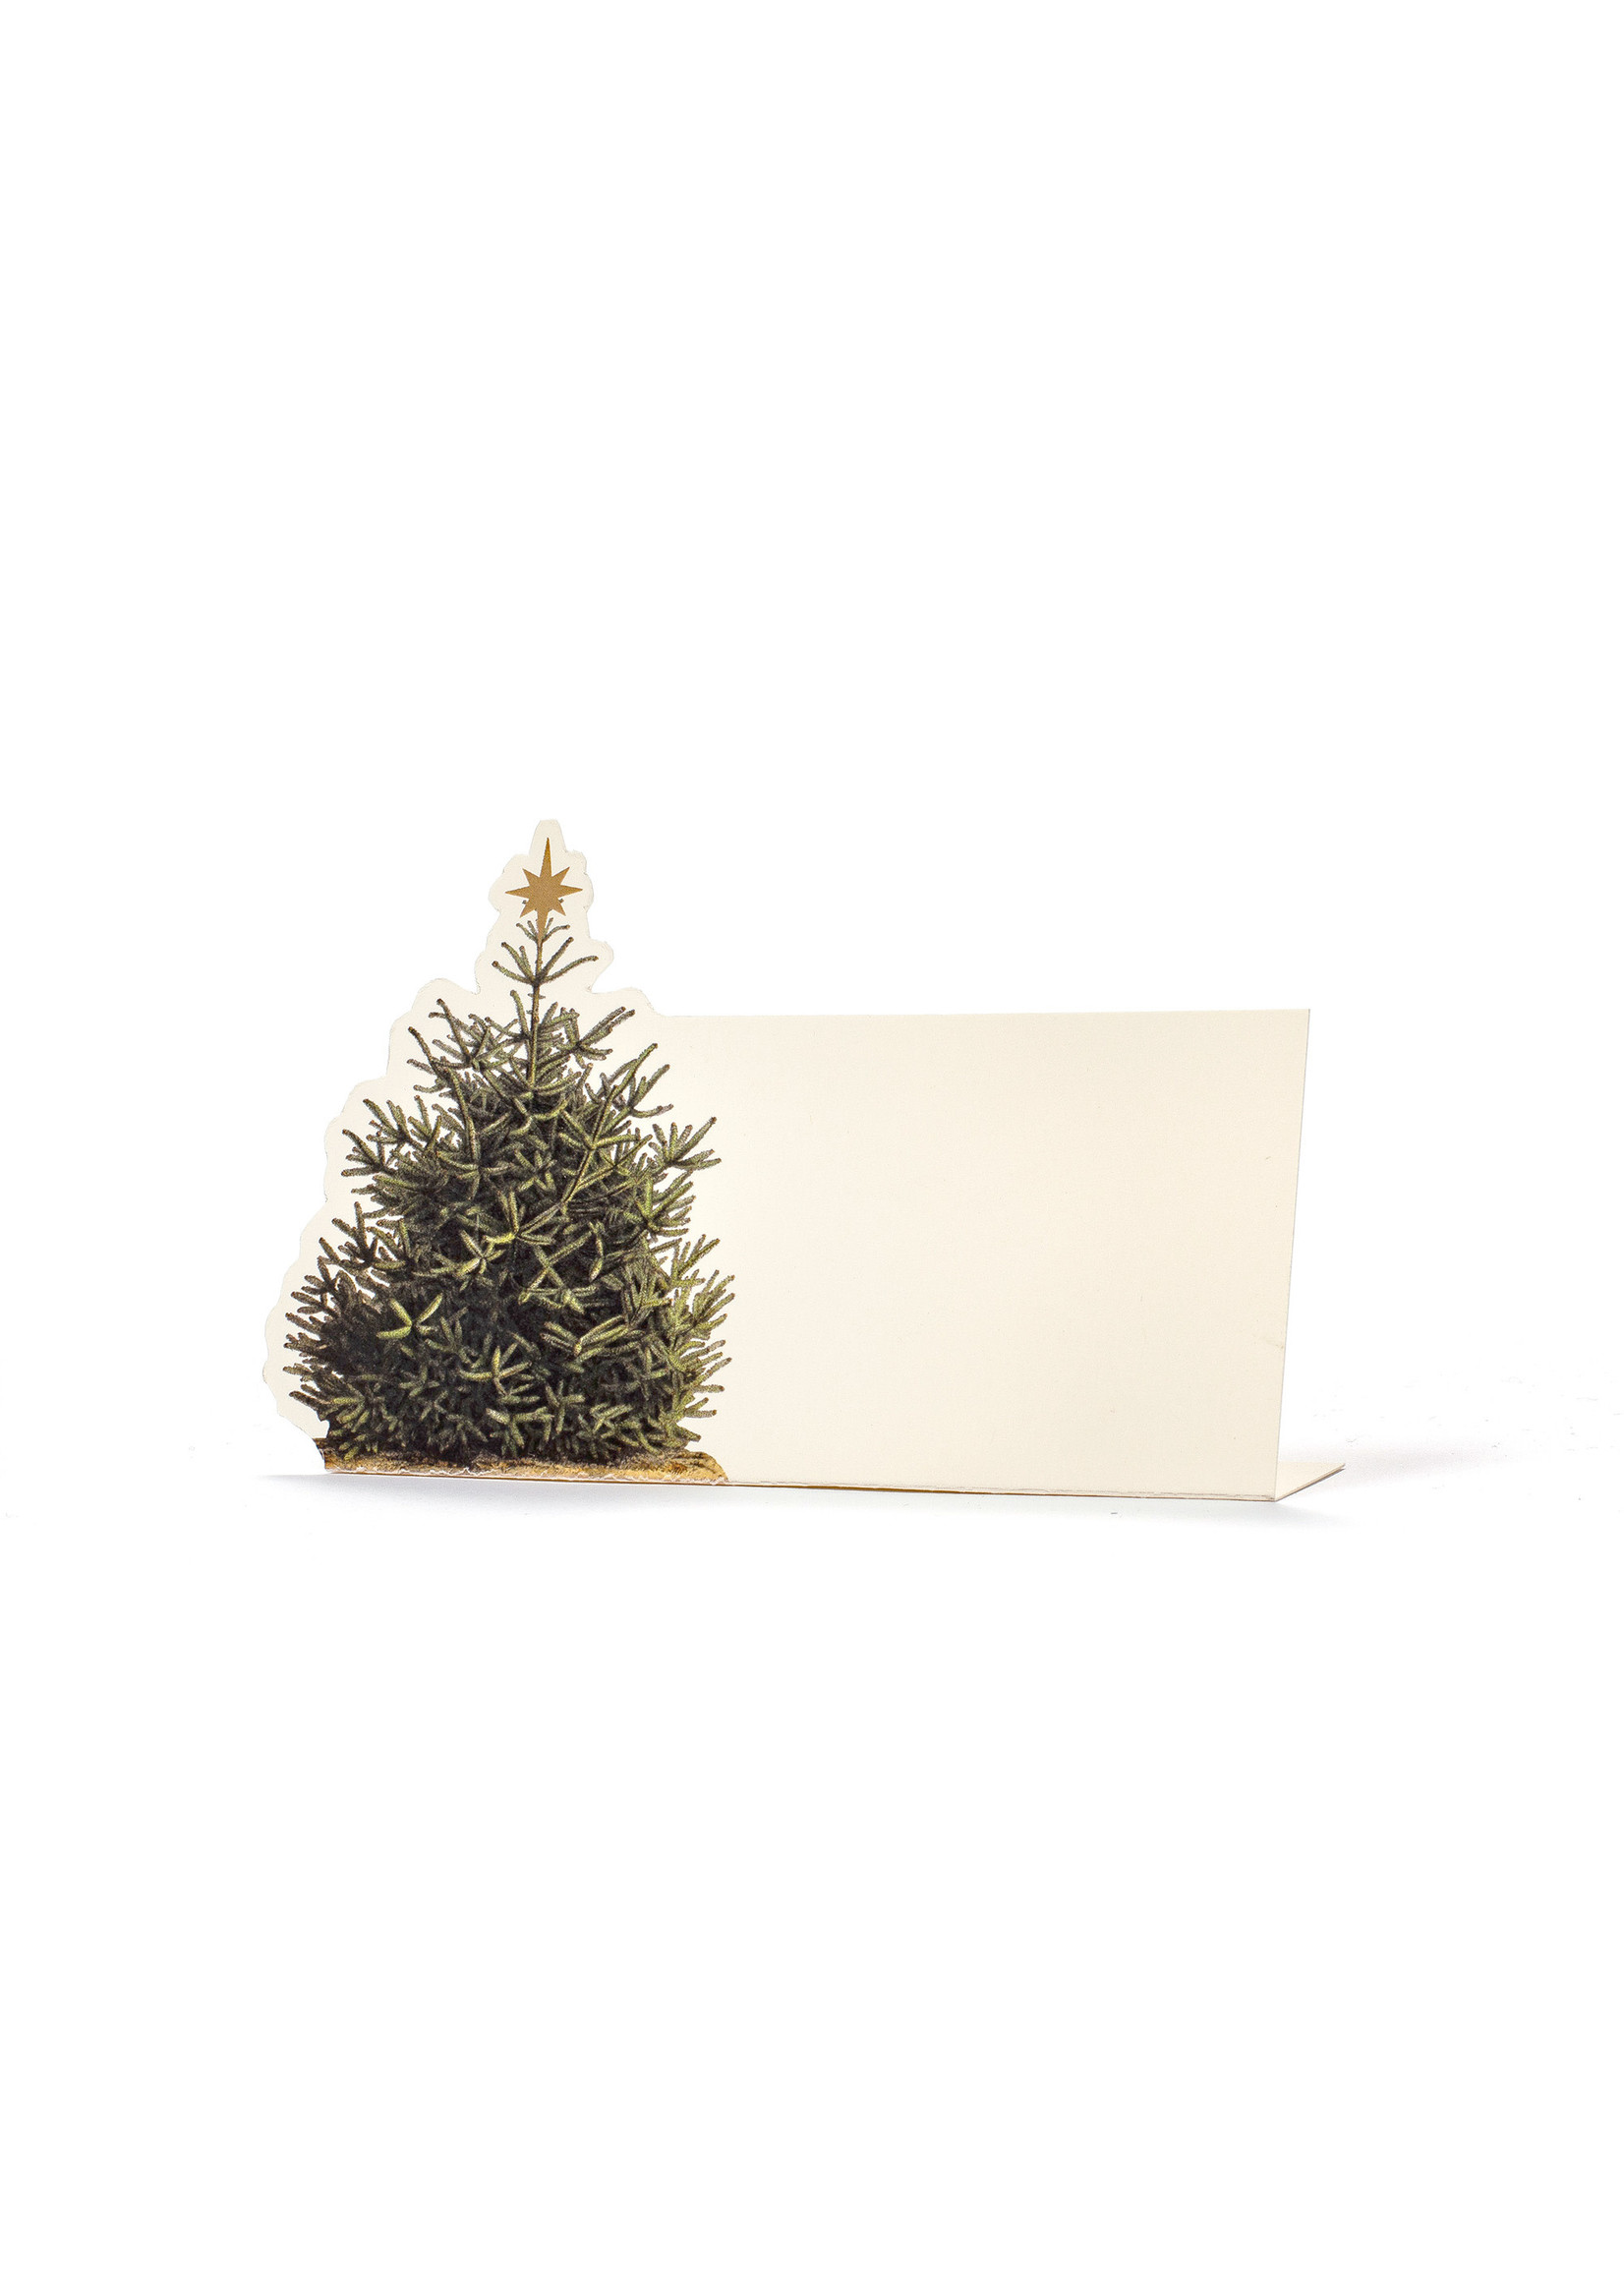 Hester & Cook Place Cards - Christmas Tree (pack of 12)